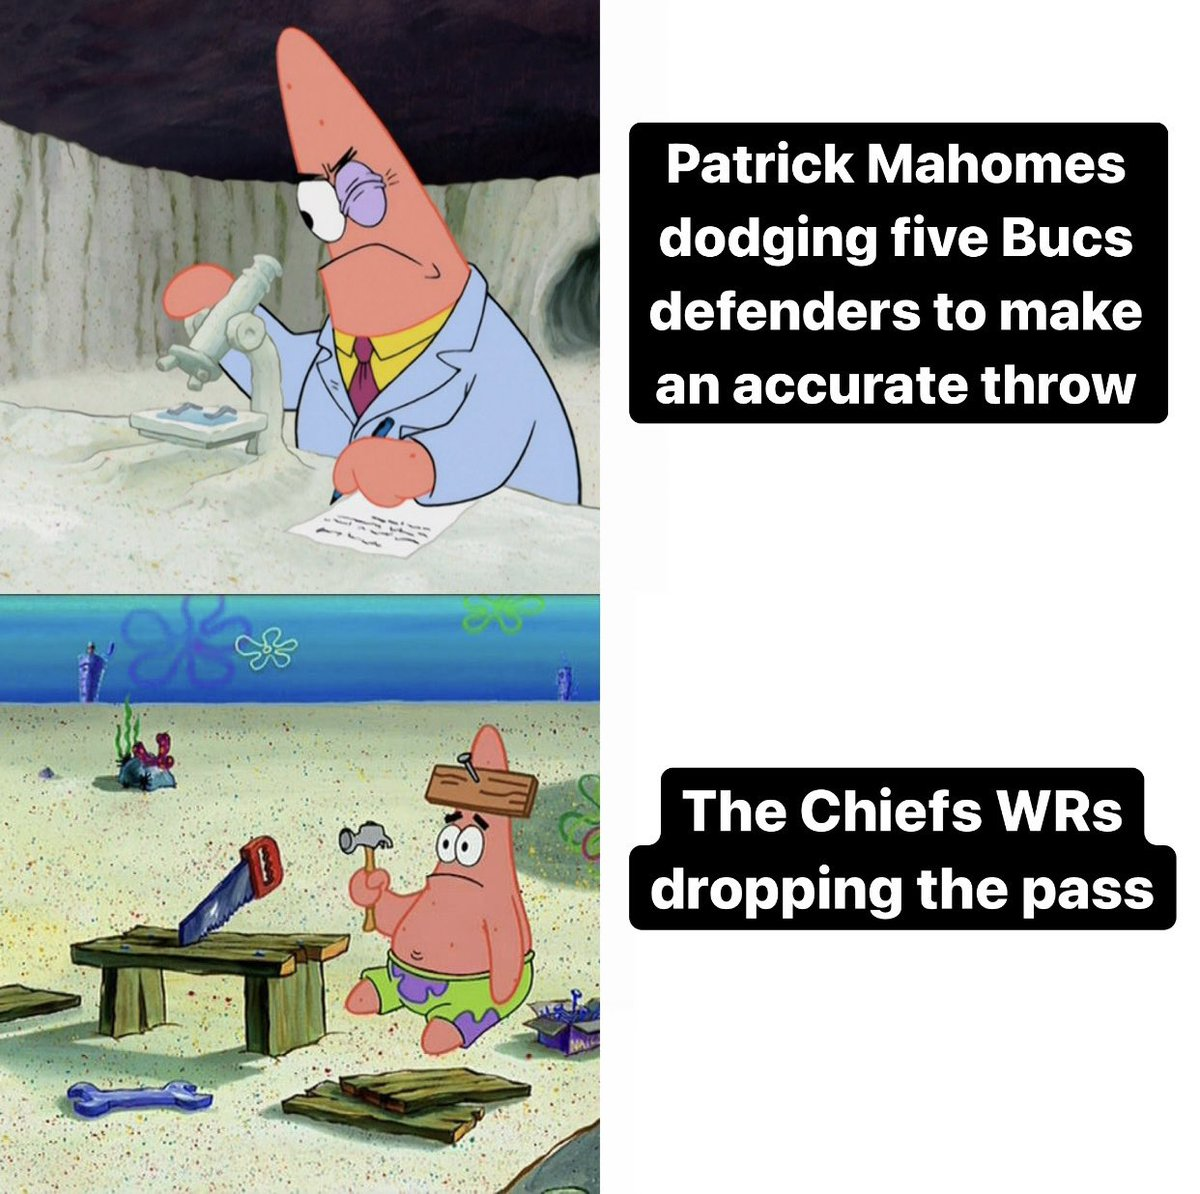 Replying to @NFL_Memes: Chiefs offense summed up